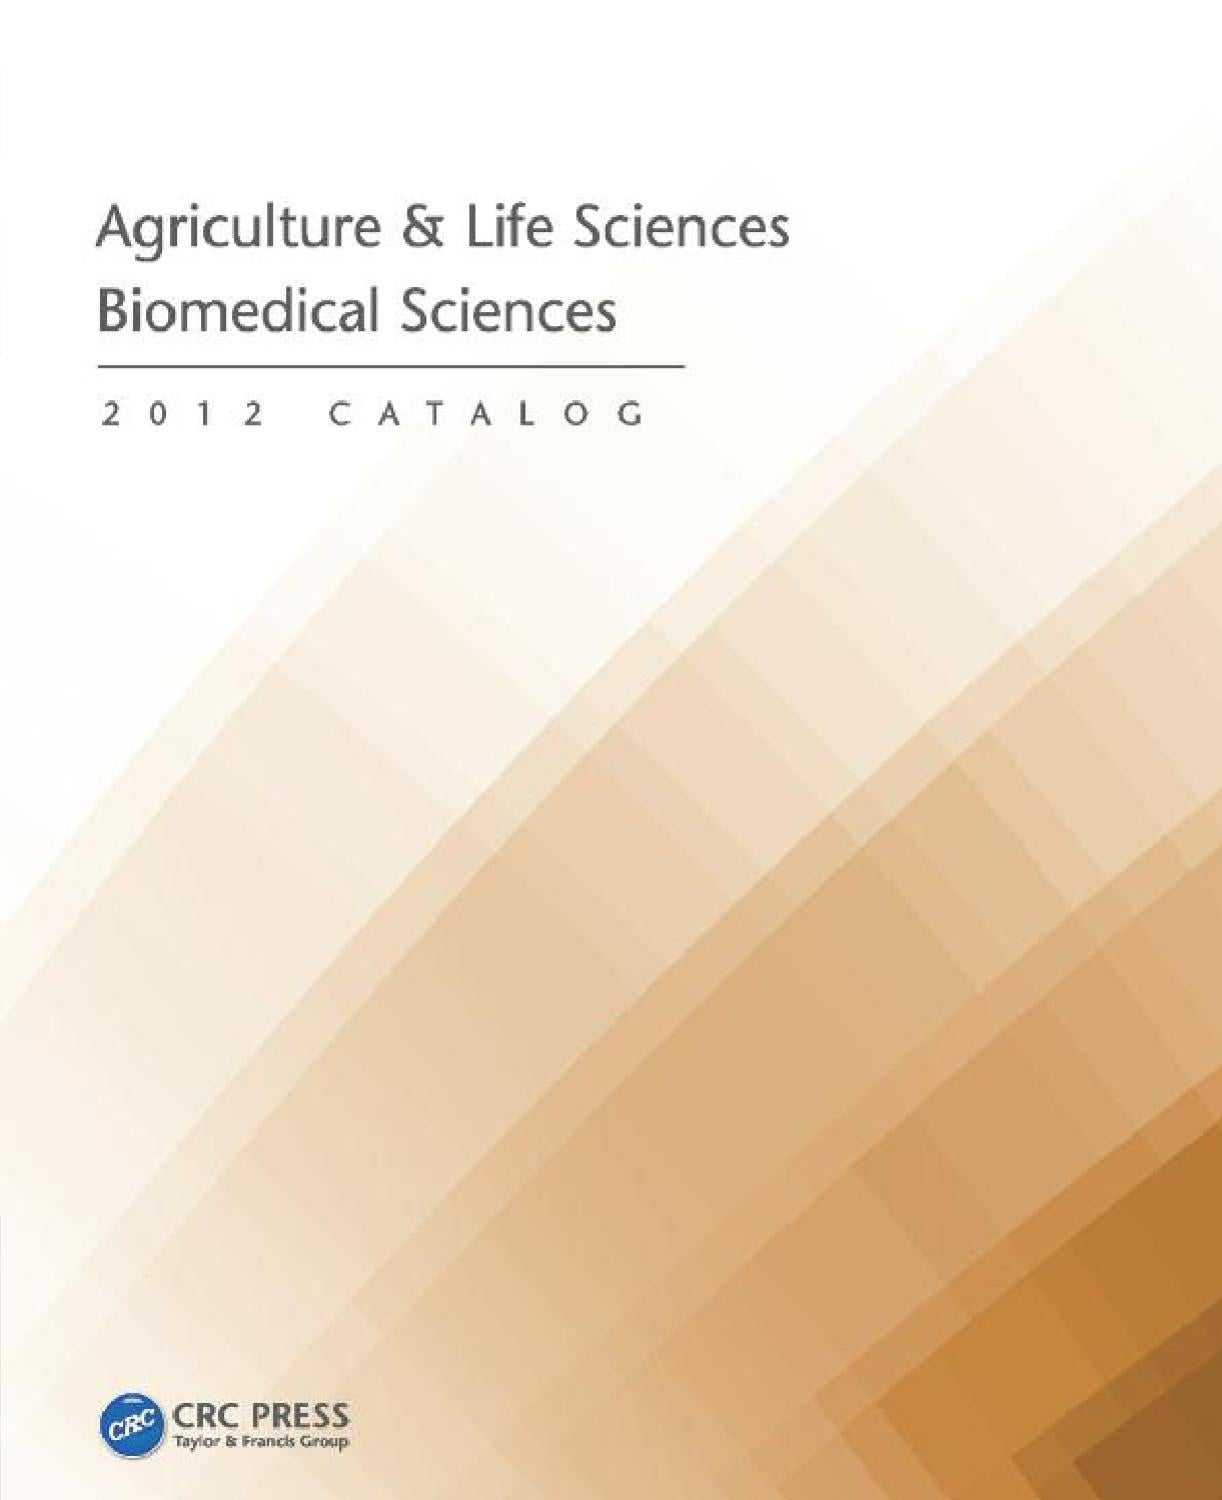 Agriculture Life Sciences Biomedical By Crc Press Issuu Bulk Transistor Tester 8211 An Easy Gain Classifier